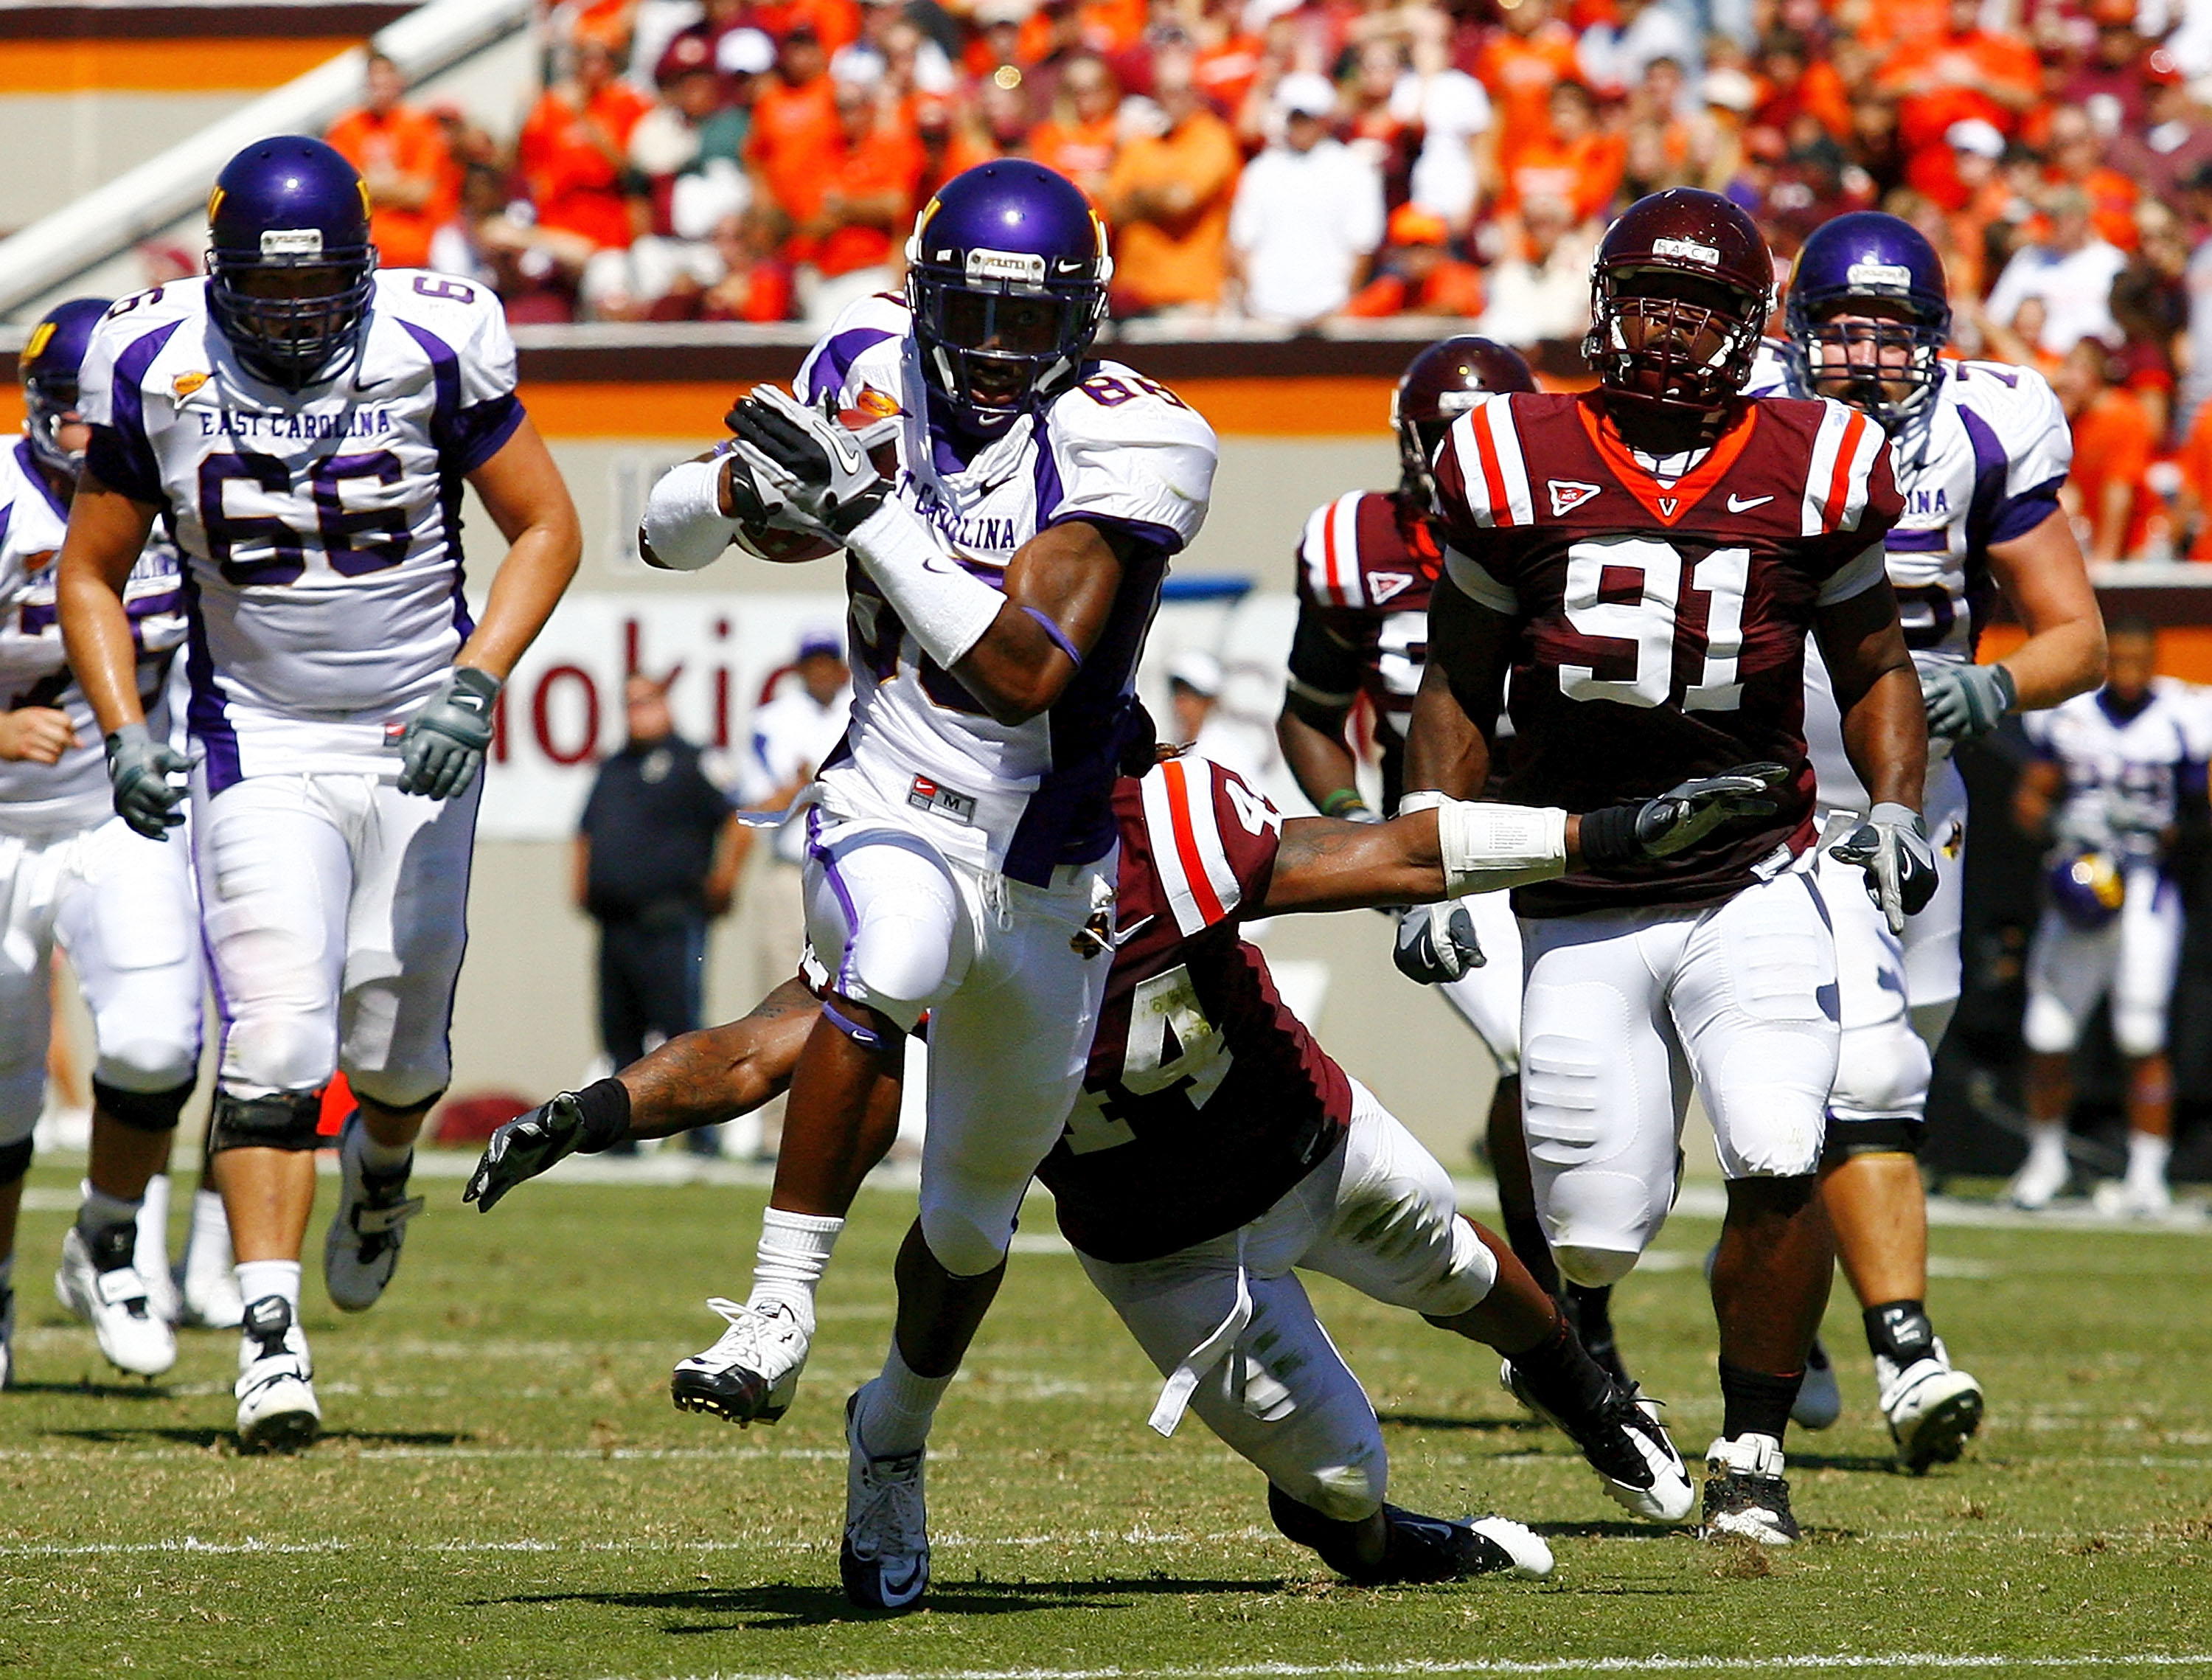 BLACKSBURG, VA - SEPTEMBER 18: Wide receiver Lance Lewis #88 of the East Carolina Pirates runs with the ball as linebacker Lyndell Gibson #44 and defensive tackle John Graves #91 of the Virginia Tech Hokies chase at Lane Stadium on September 18, 2010 in B